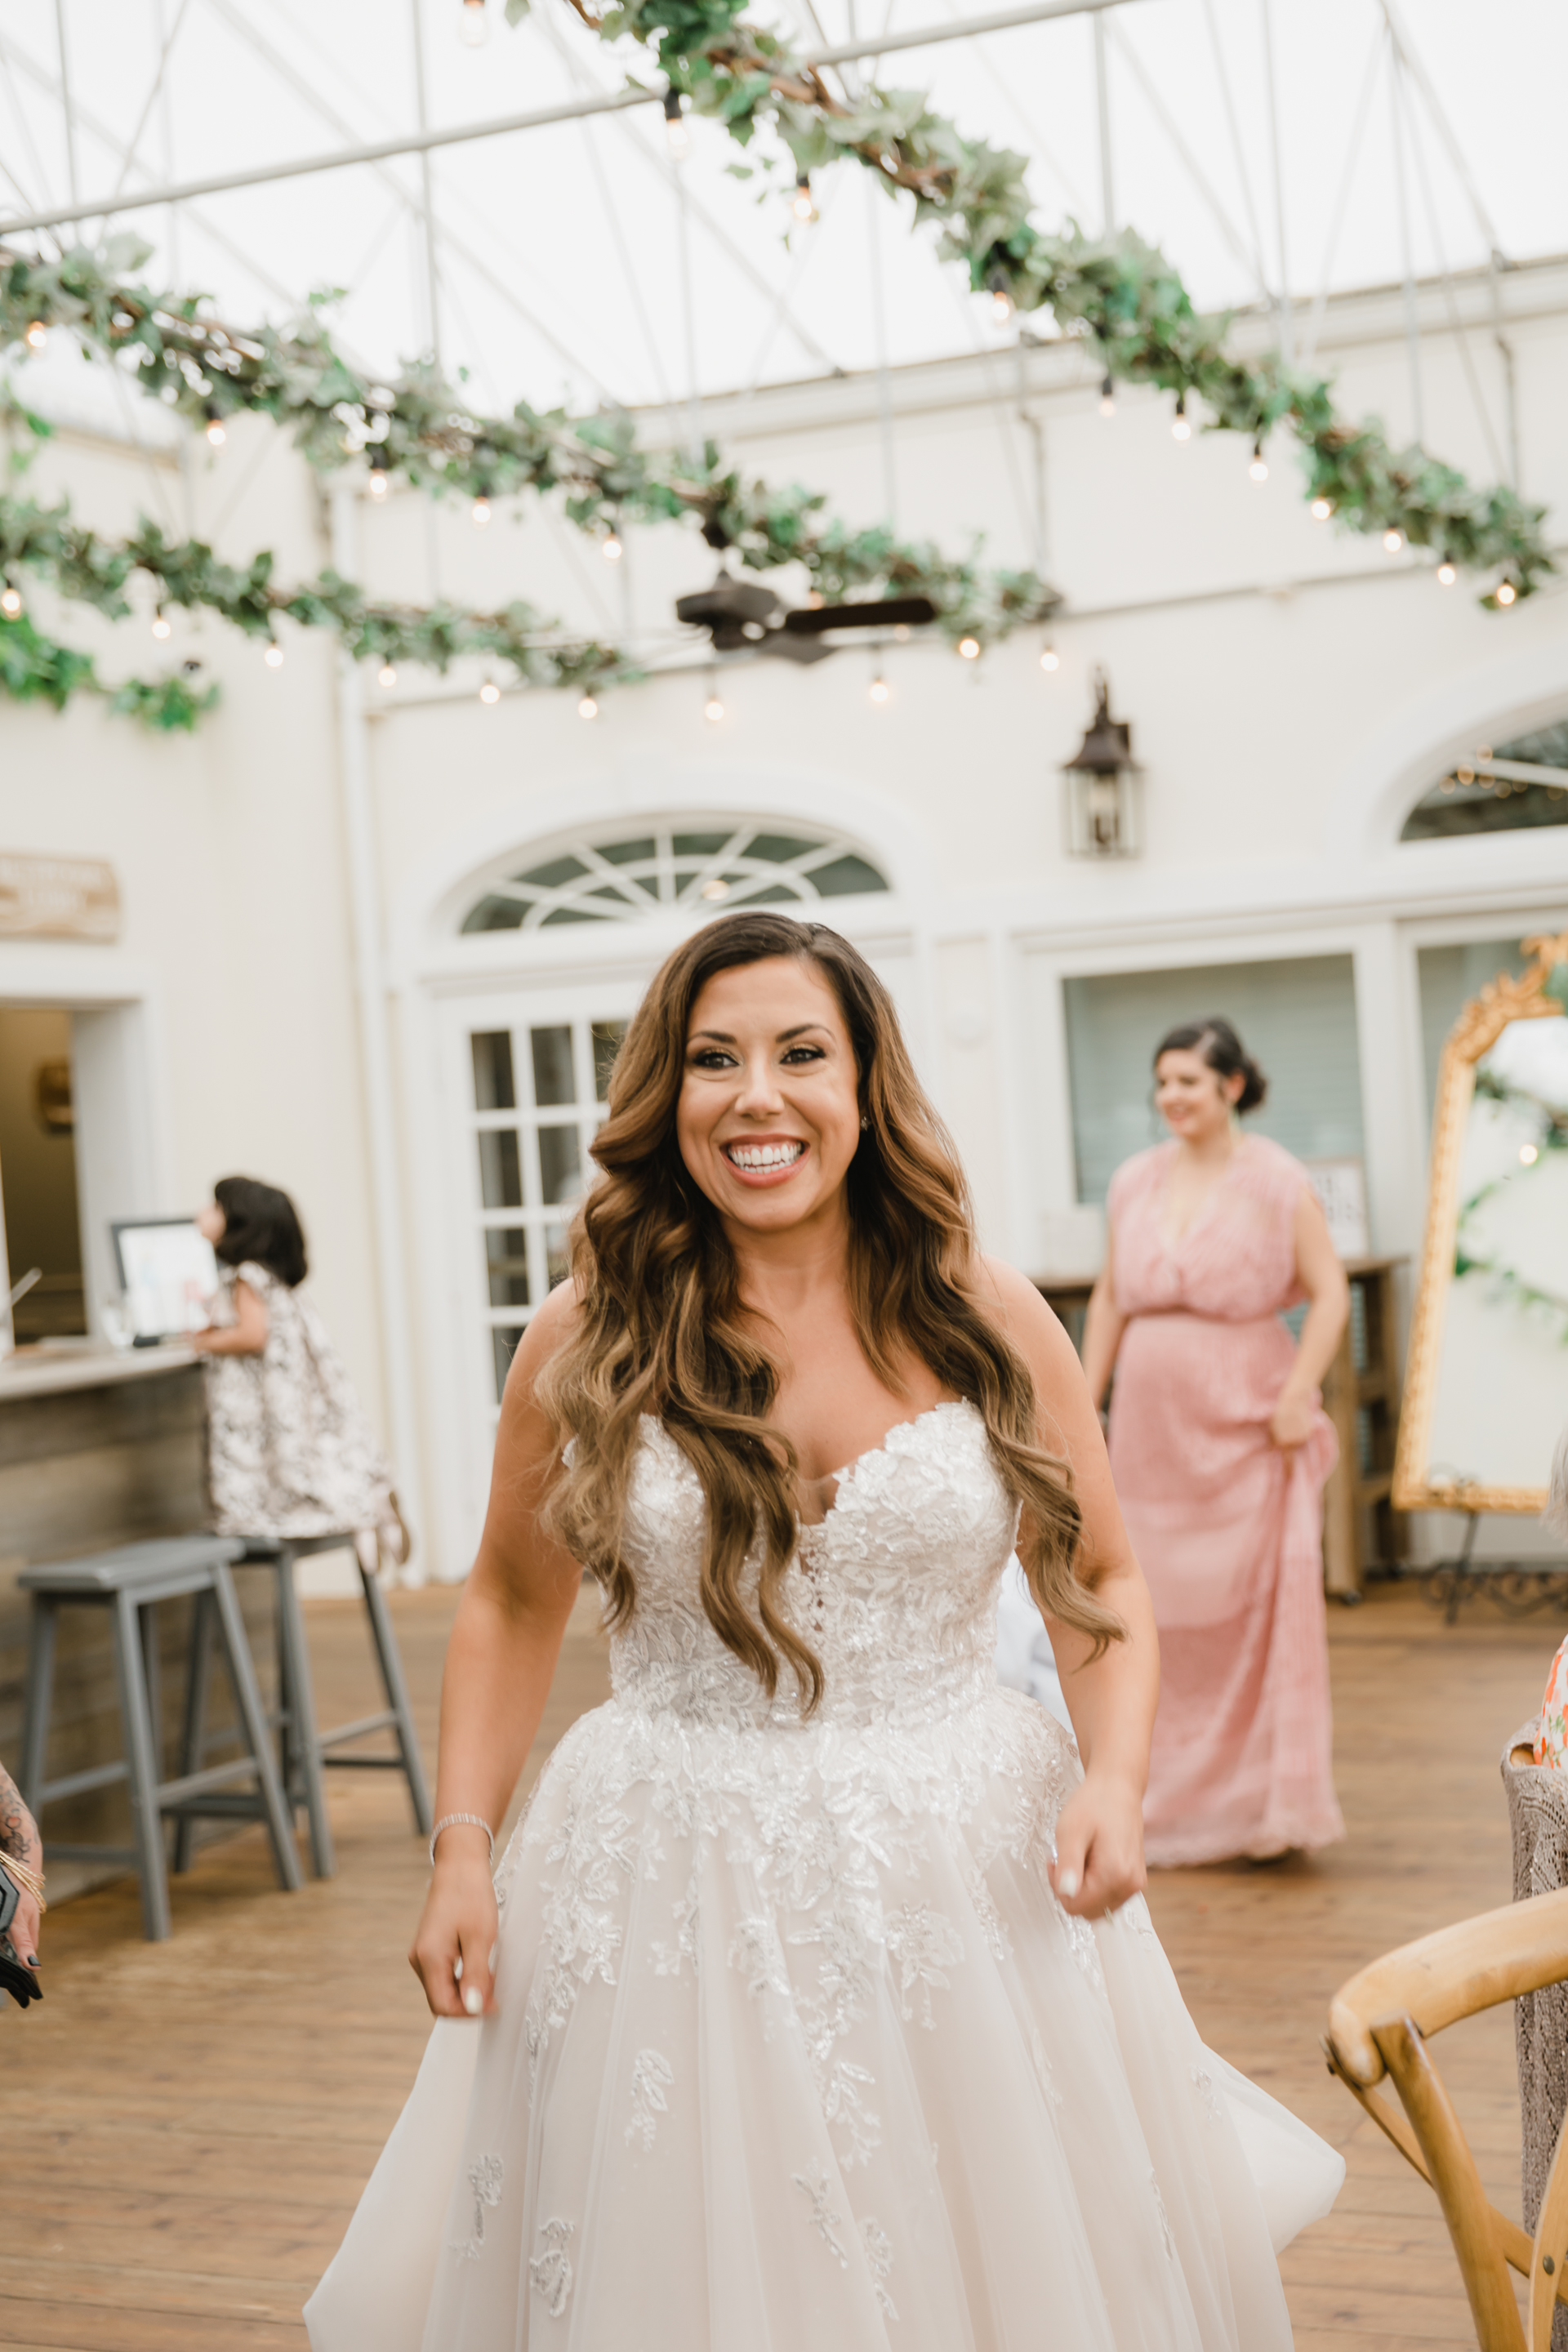 Gianna Keiko Atlanta NYC California Wedding Photographer_Sneak Peek-61.jpg